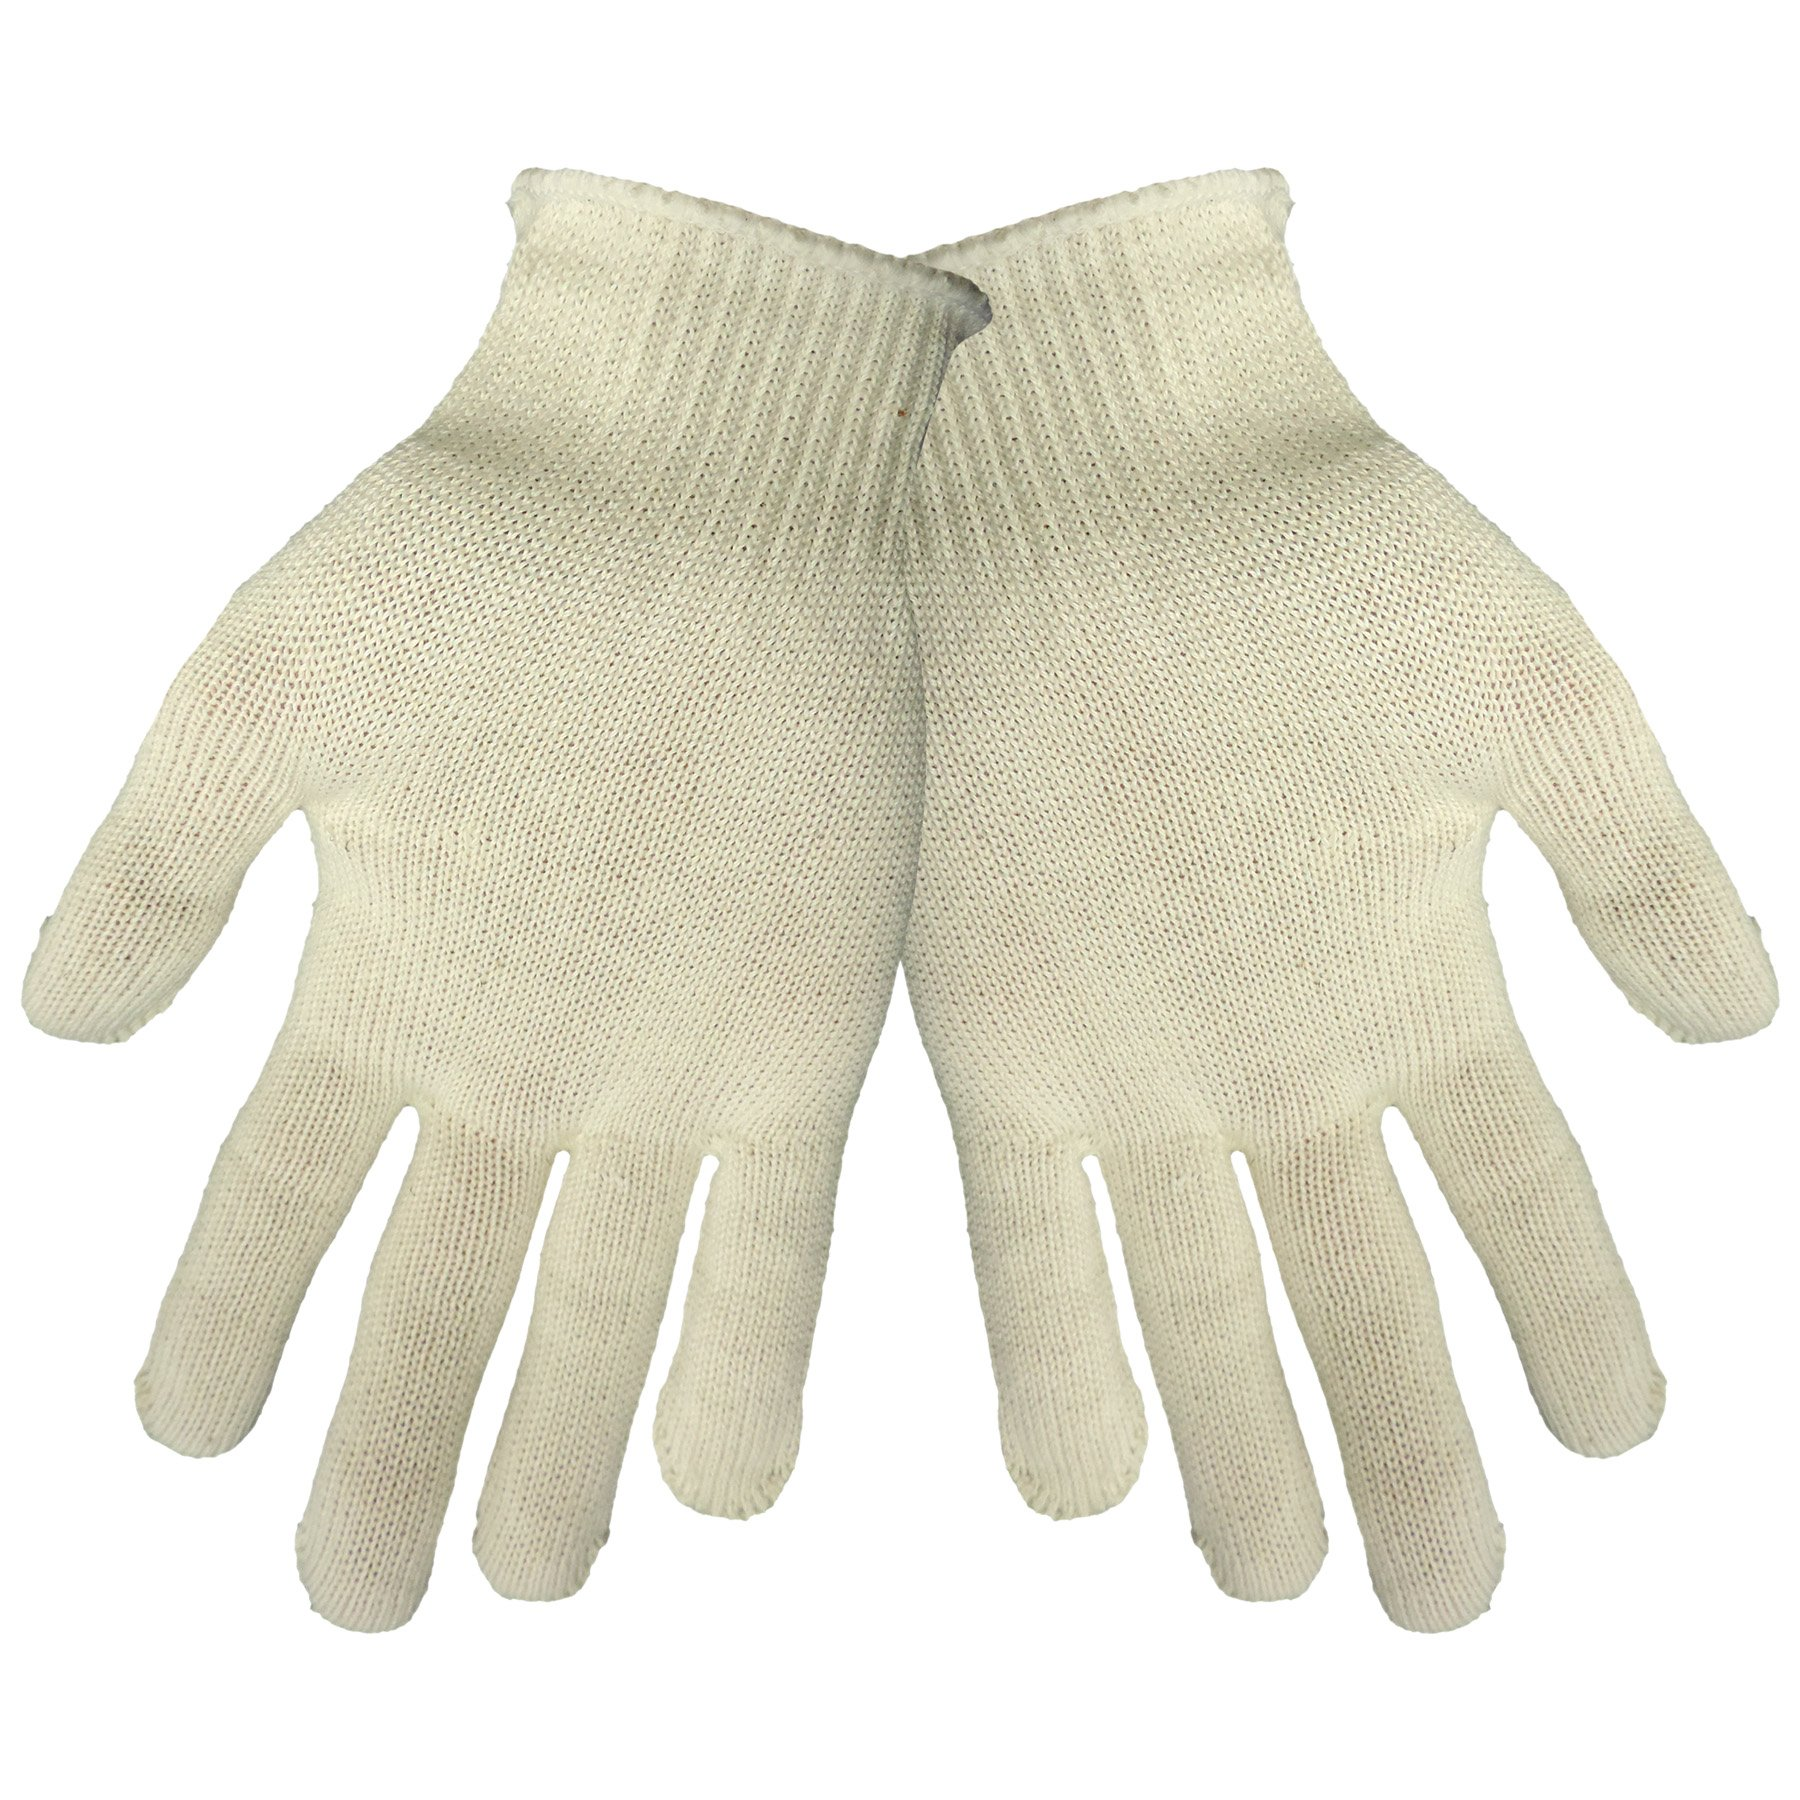 Global Glove S13 String Knit Lightweight Glove Liner (Case of 300) by Global Glove